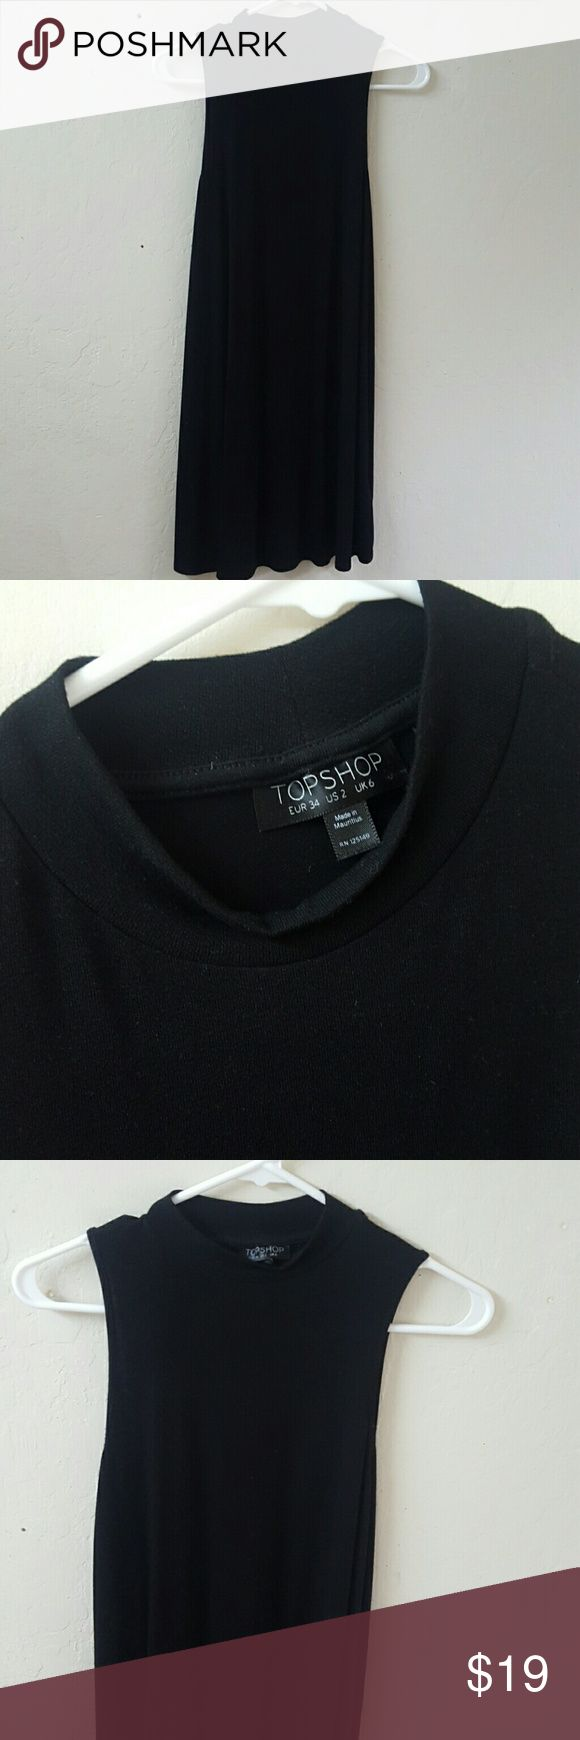 *SALE* Topshop black tunic dress Worn once in good condition. Topshop Dresses Midi